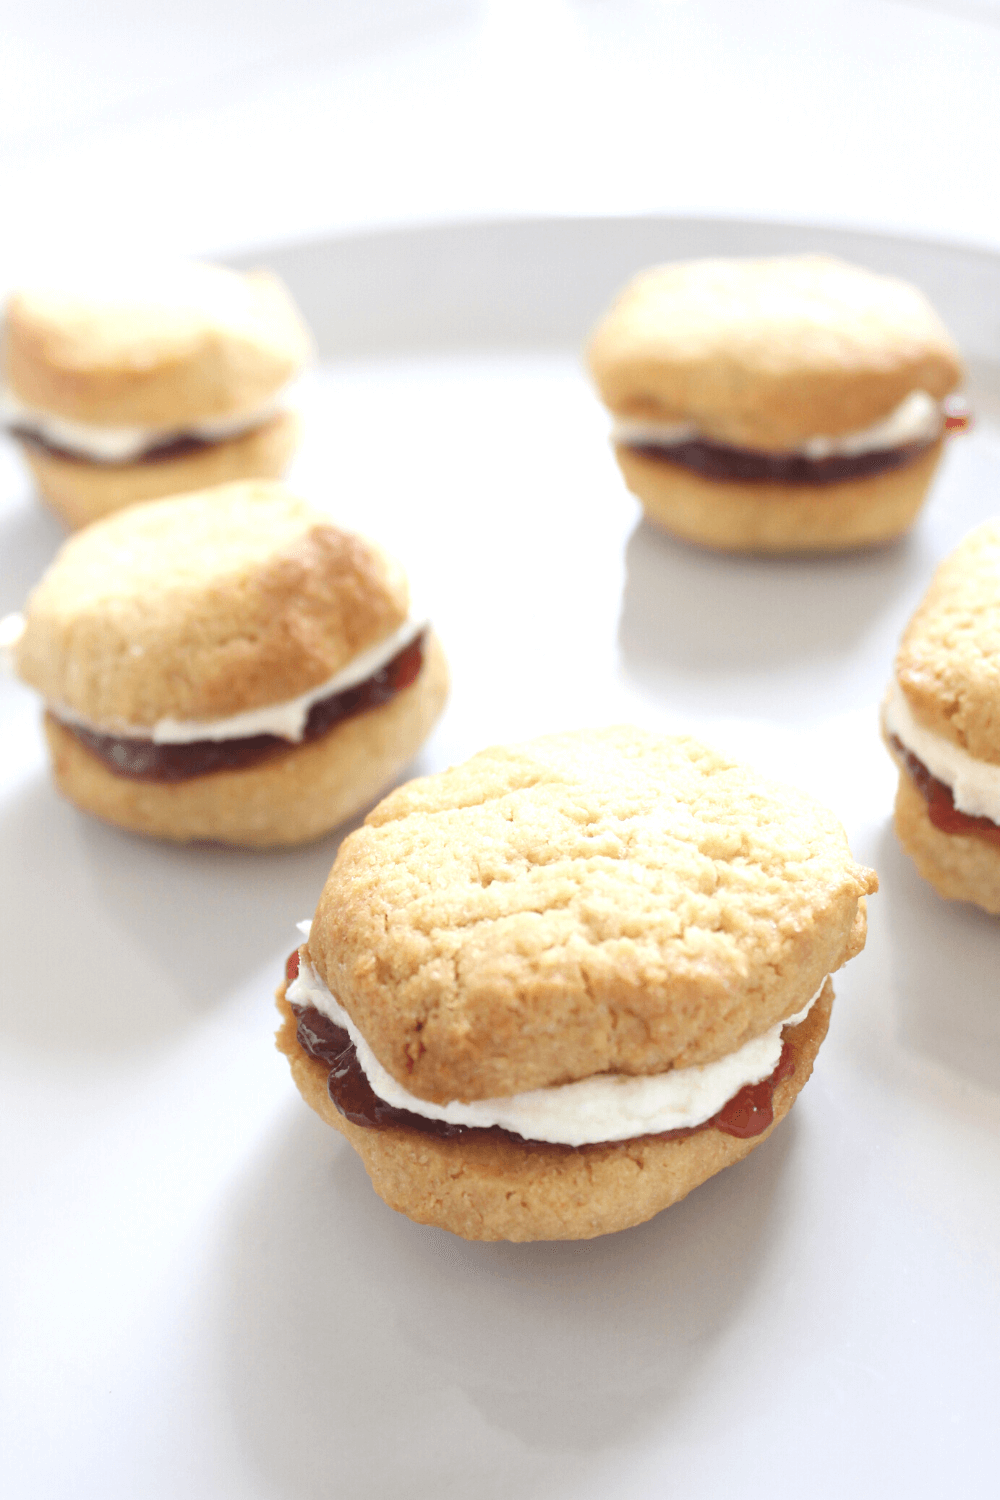 Monte Carlo biscuits are one of my all time favourite Arnott's biscuits.  I had never attempted to recreate them myself, but Arnott's have just released their secret Monte Carlo recipe so I thought it was the perfect time to give them a try.